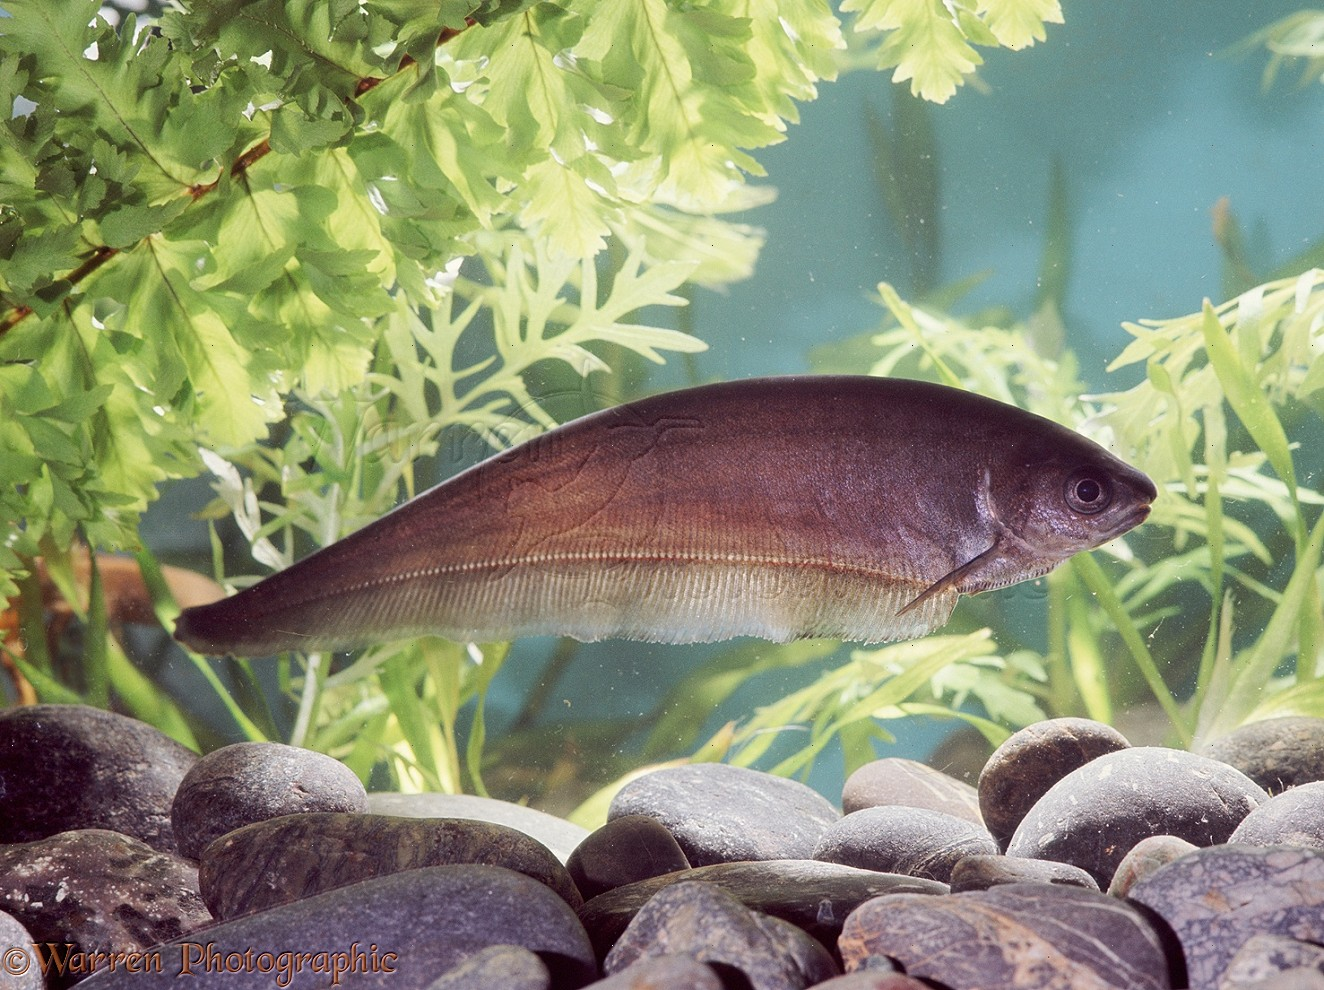 African Knife Fish photo - WP08449